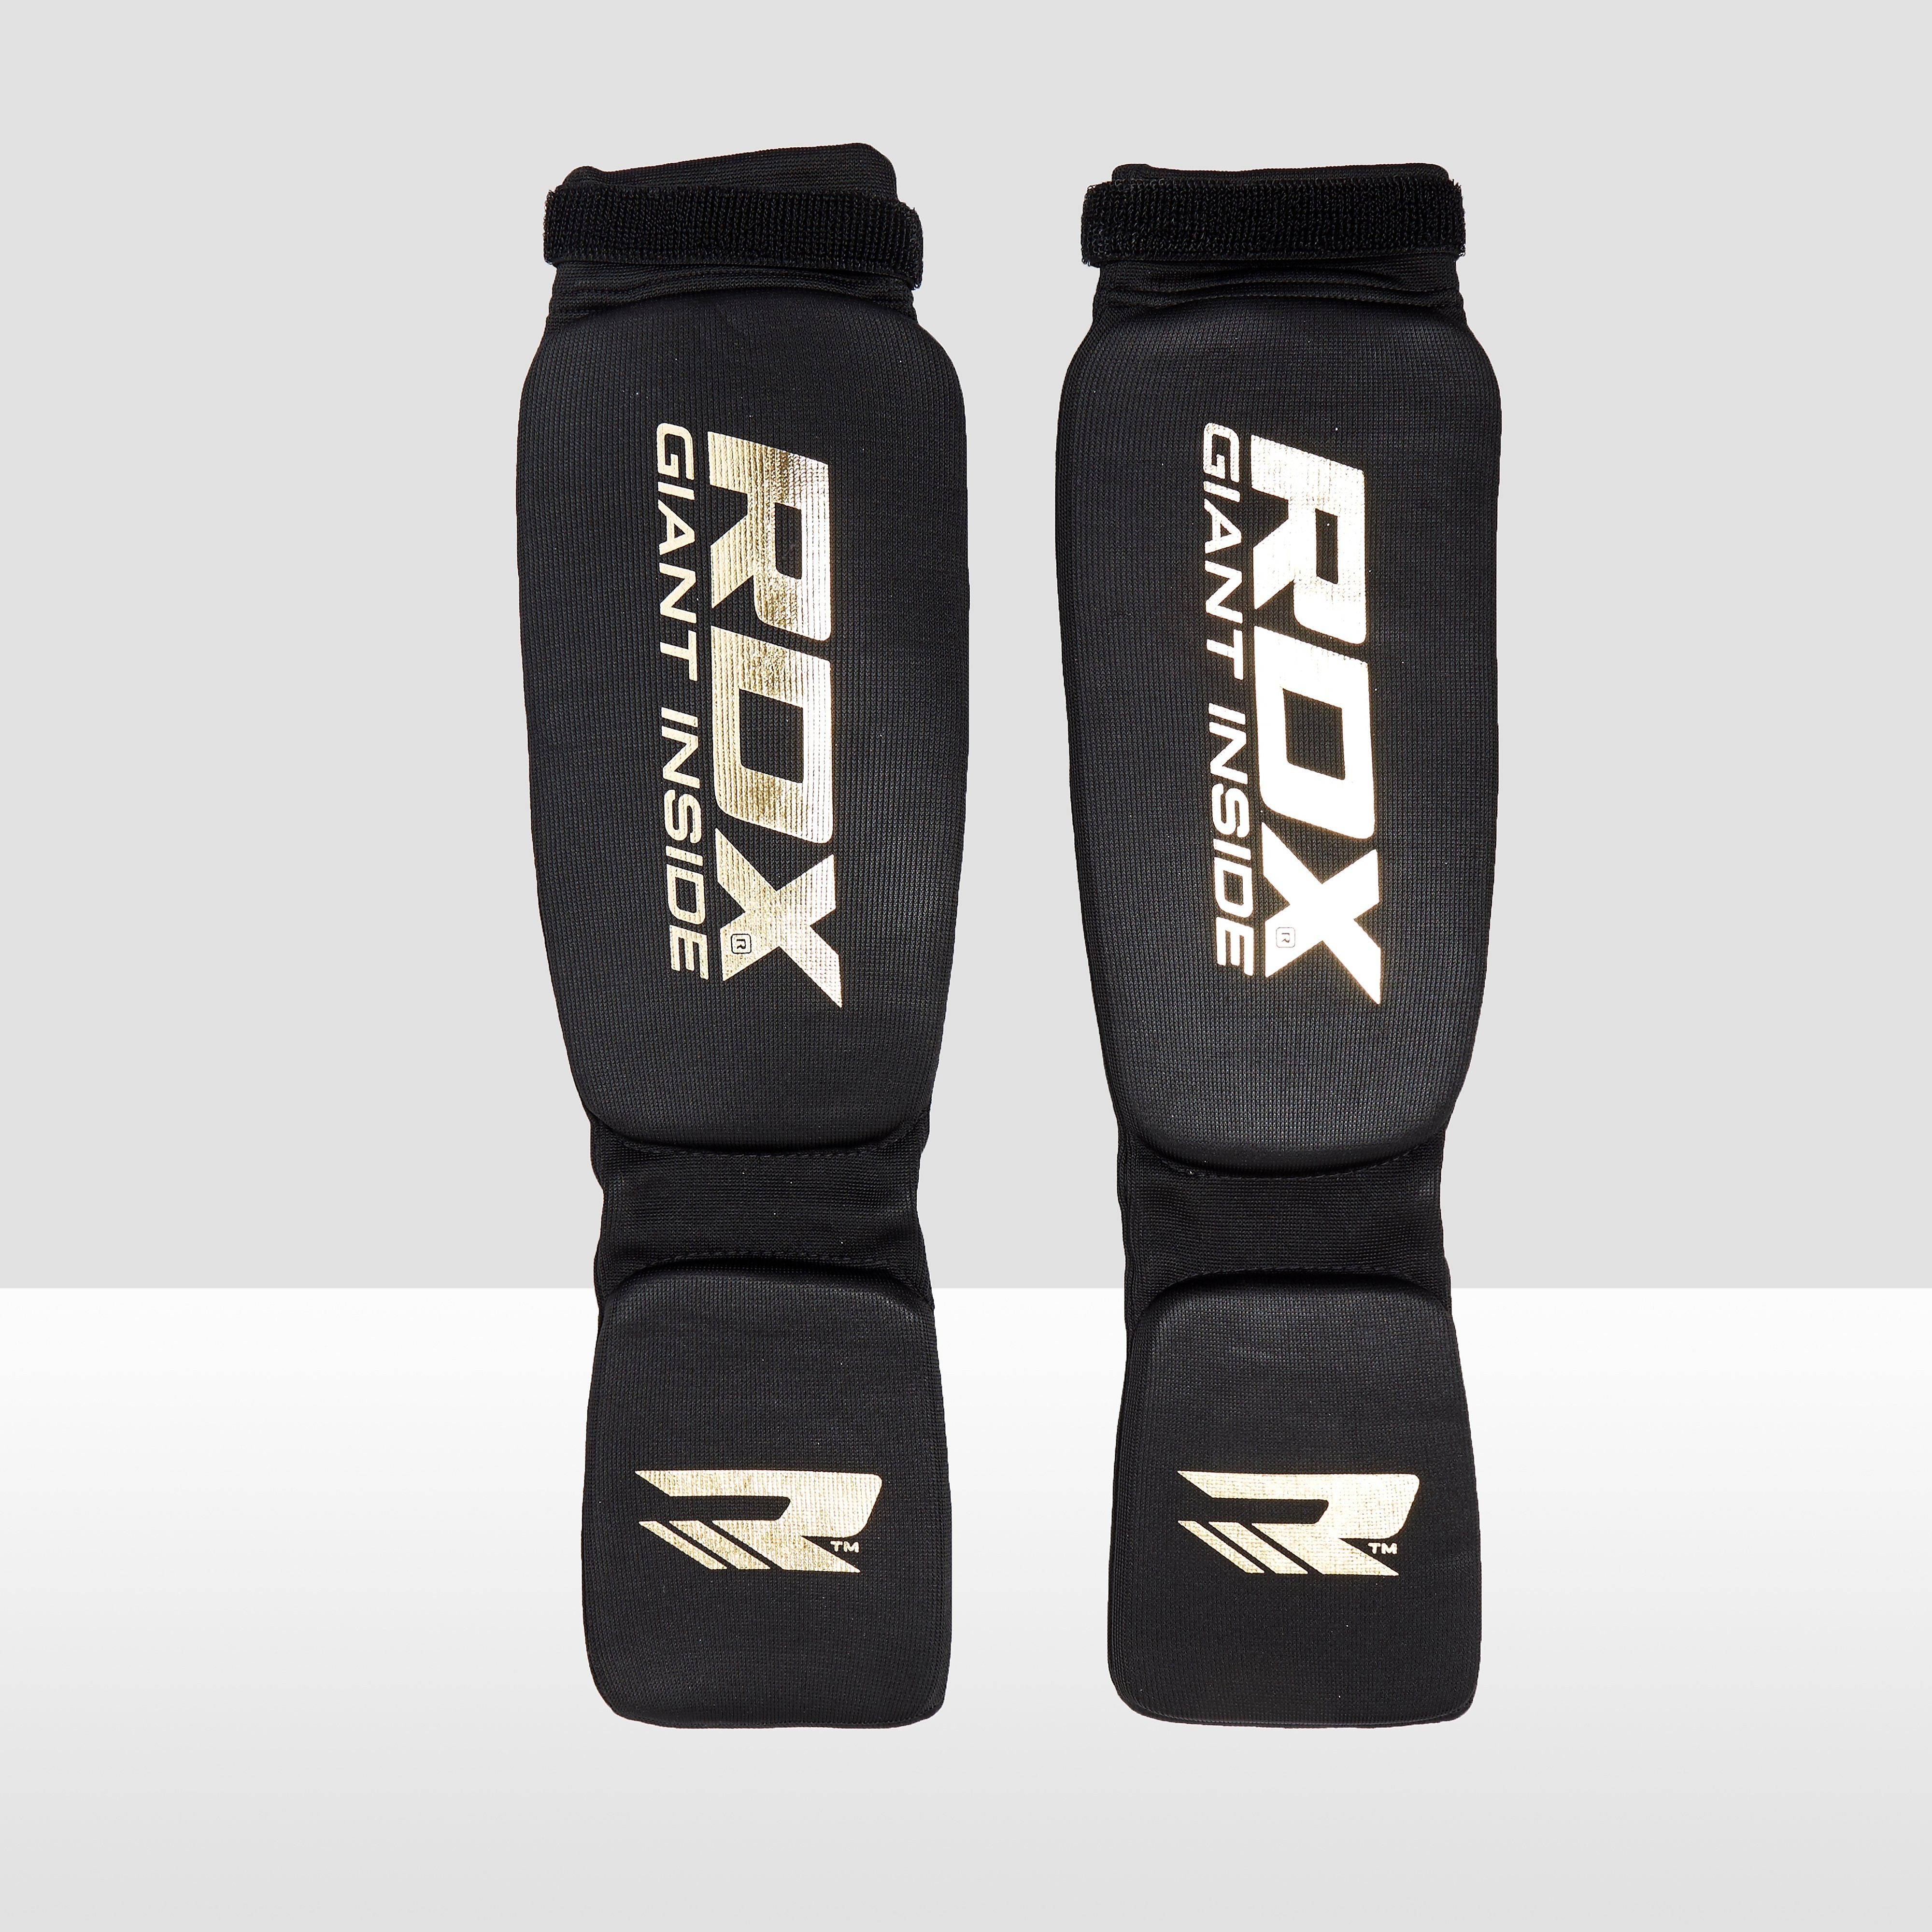 RDX INC Men's Shin Instep Pads